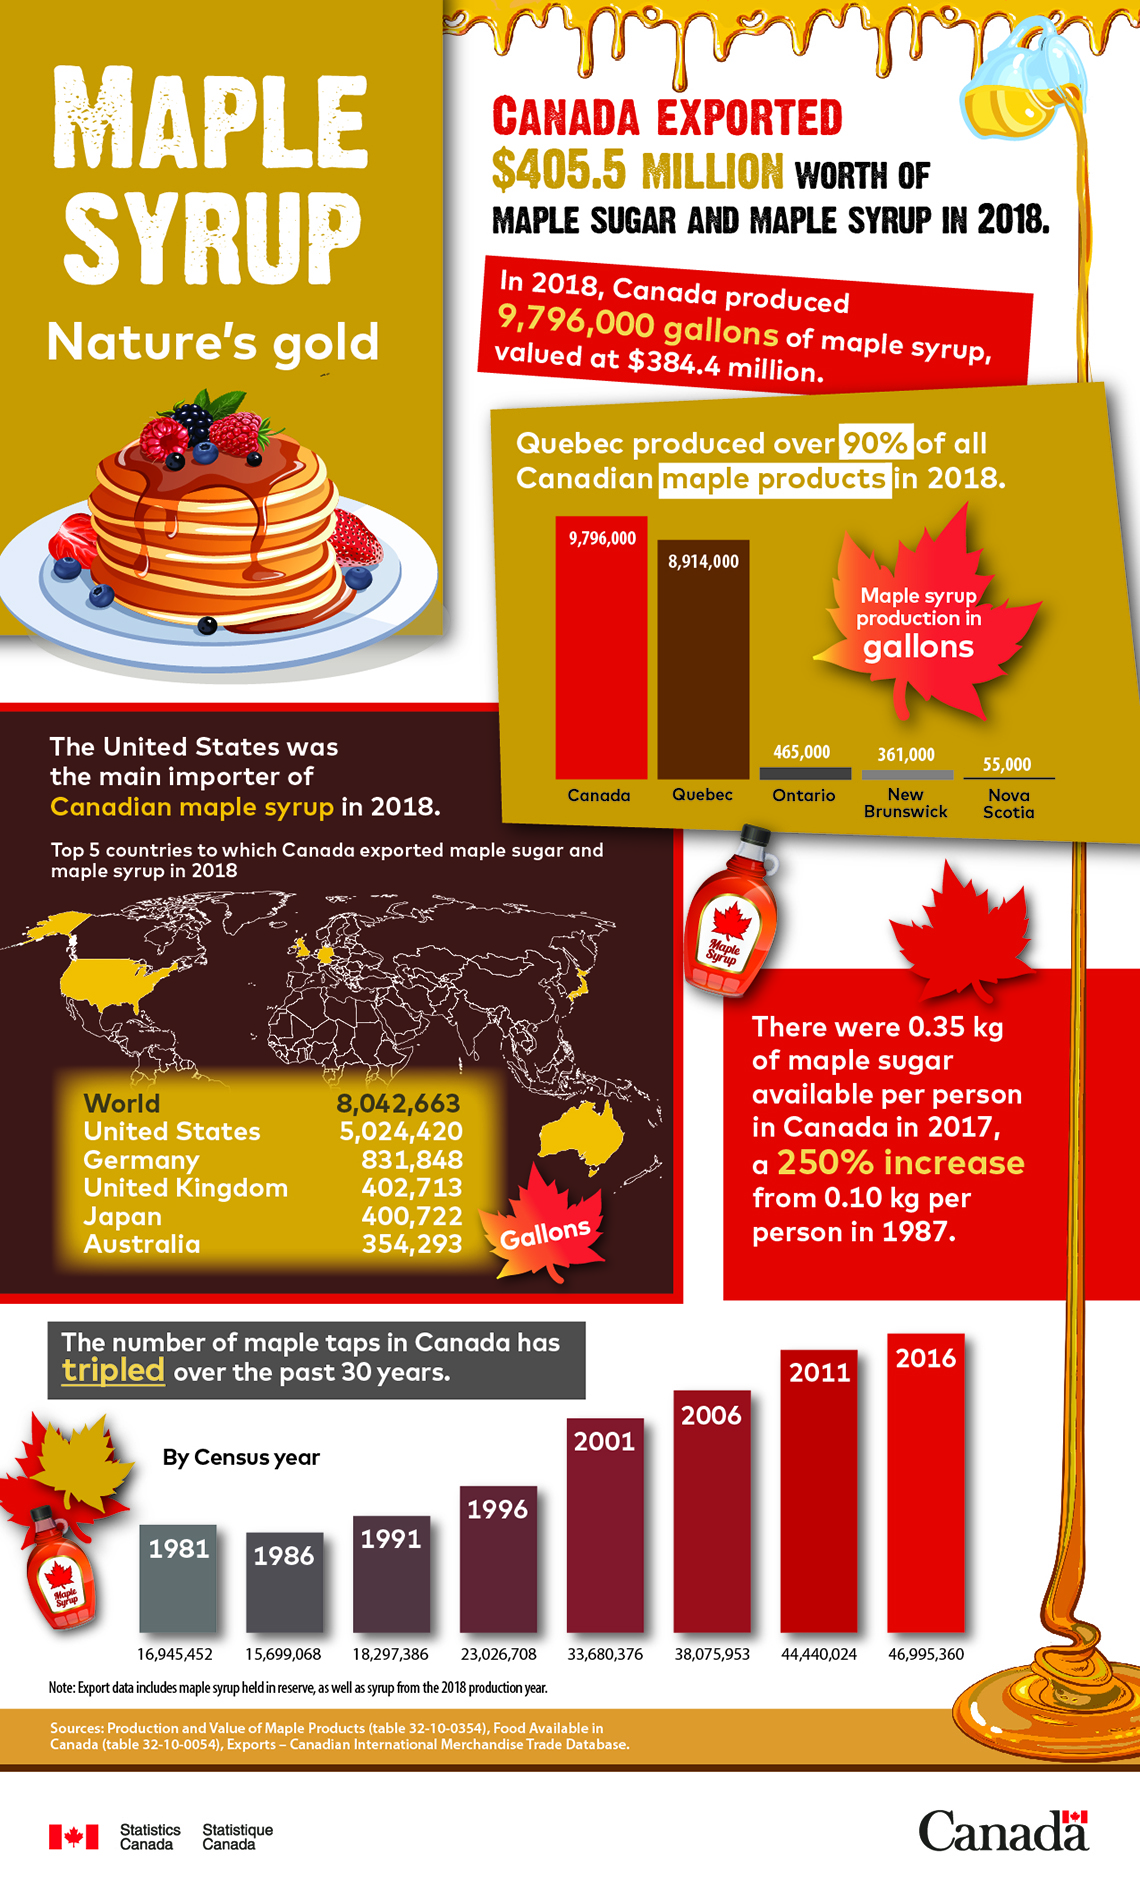 Maple syrup: Natureâs gold